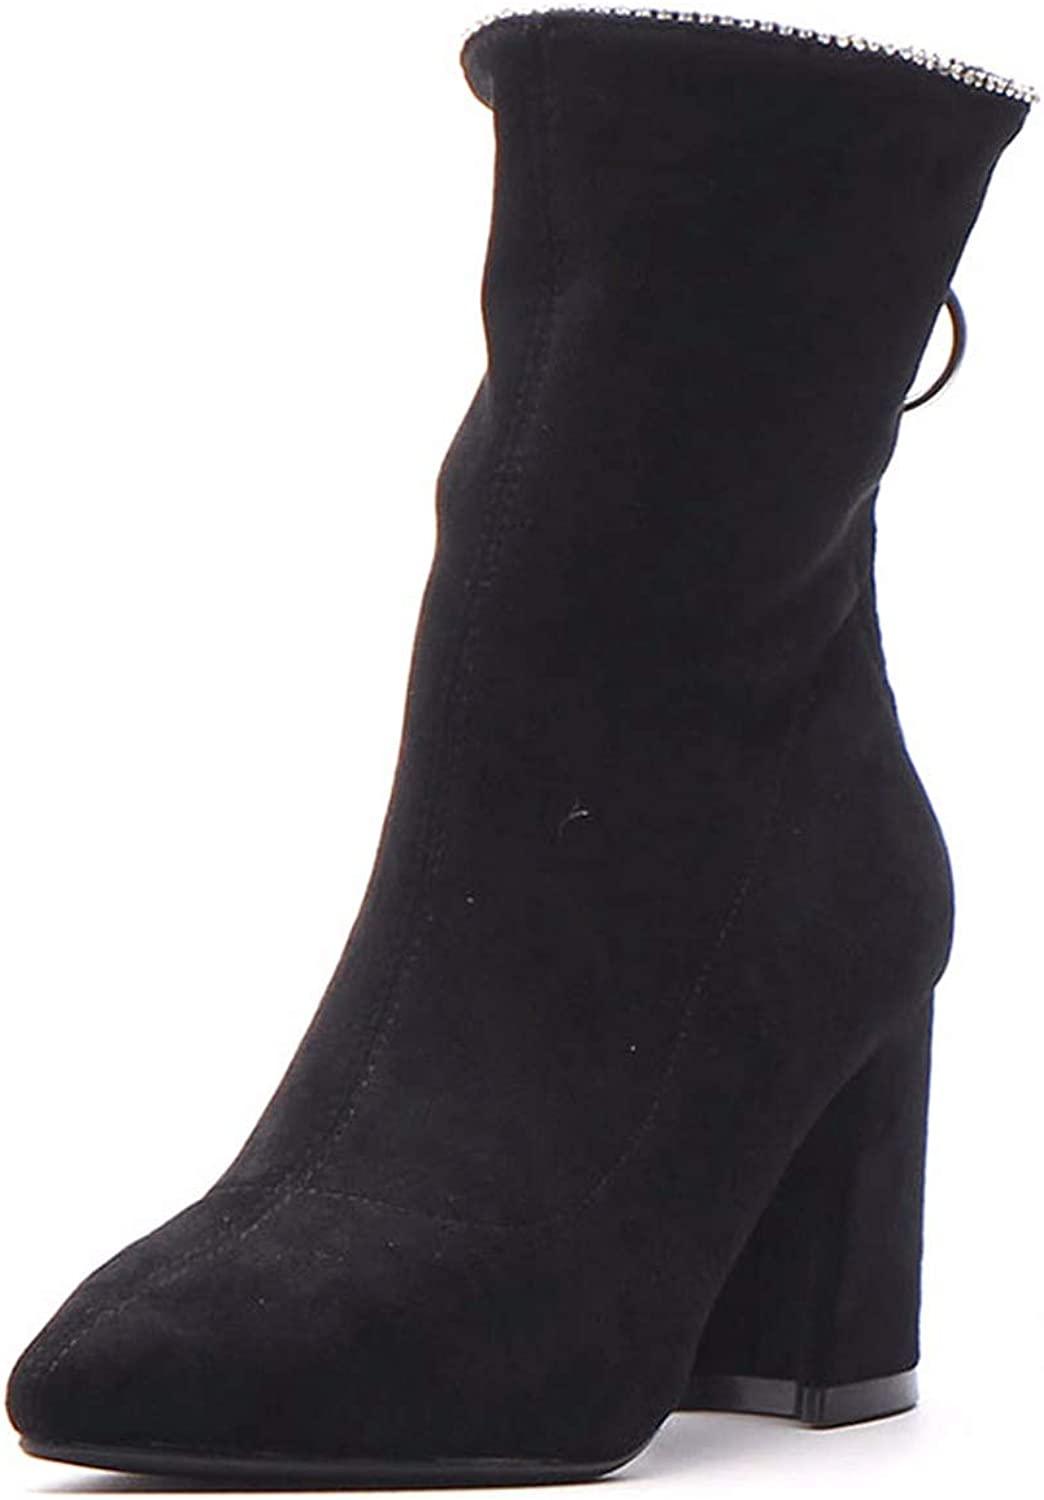 SFSYDDY Popular shoes Martin Boots with High 8Cm Rough Wild Diamond Thin Short Boots.